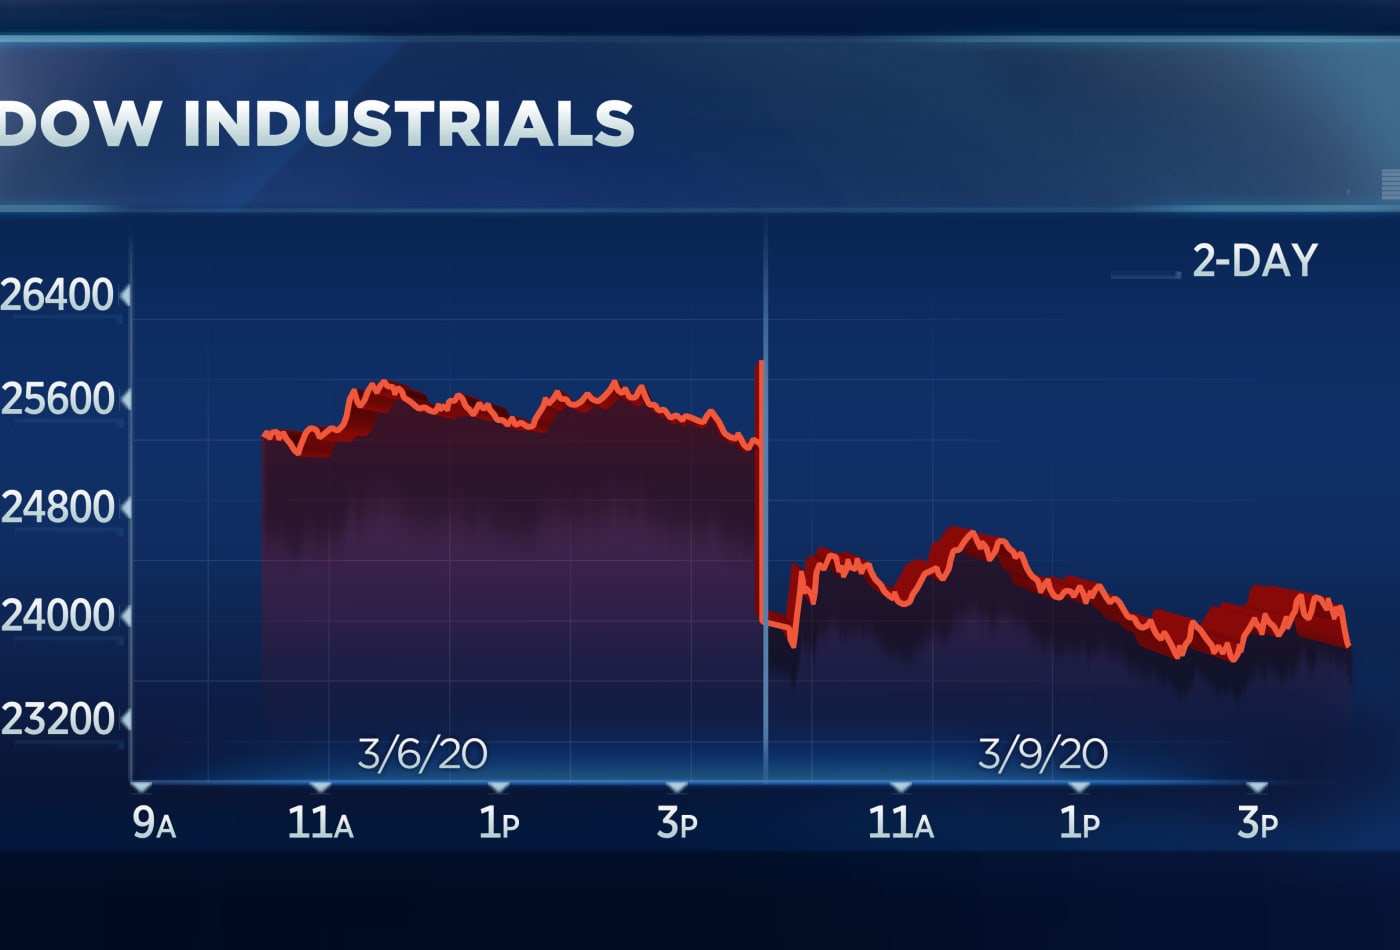 Dow sinks 2,000 points in worst day since 2008, S&P 500 drops more than 7%